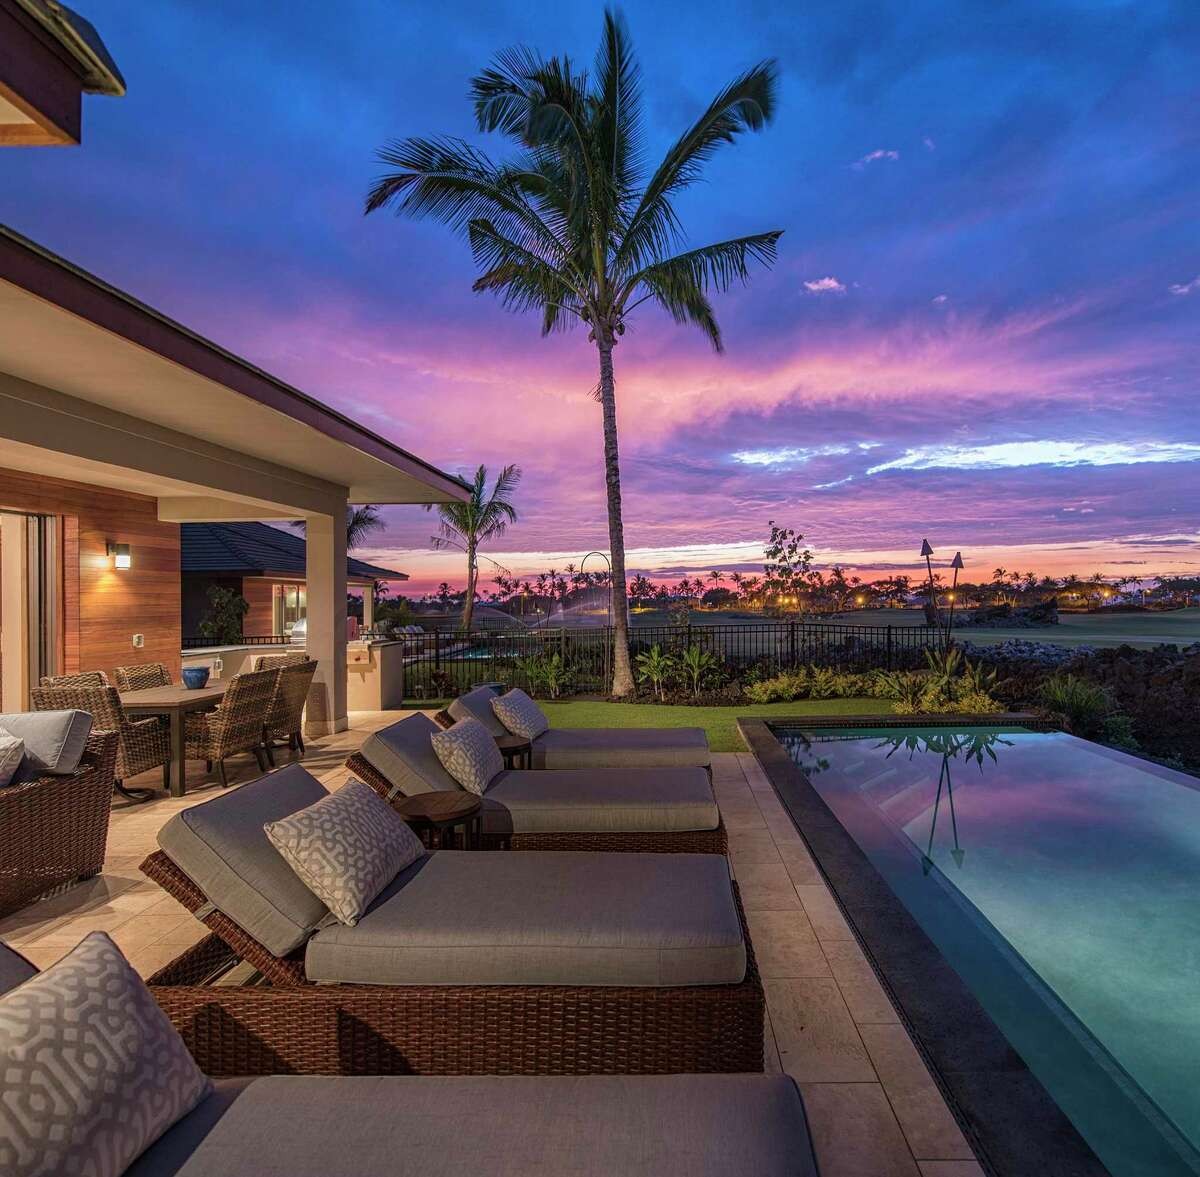 This twilight shot showcases a layout that's conducive to indoor/outdoor living at the Hawaii home.